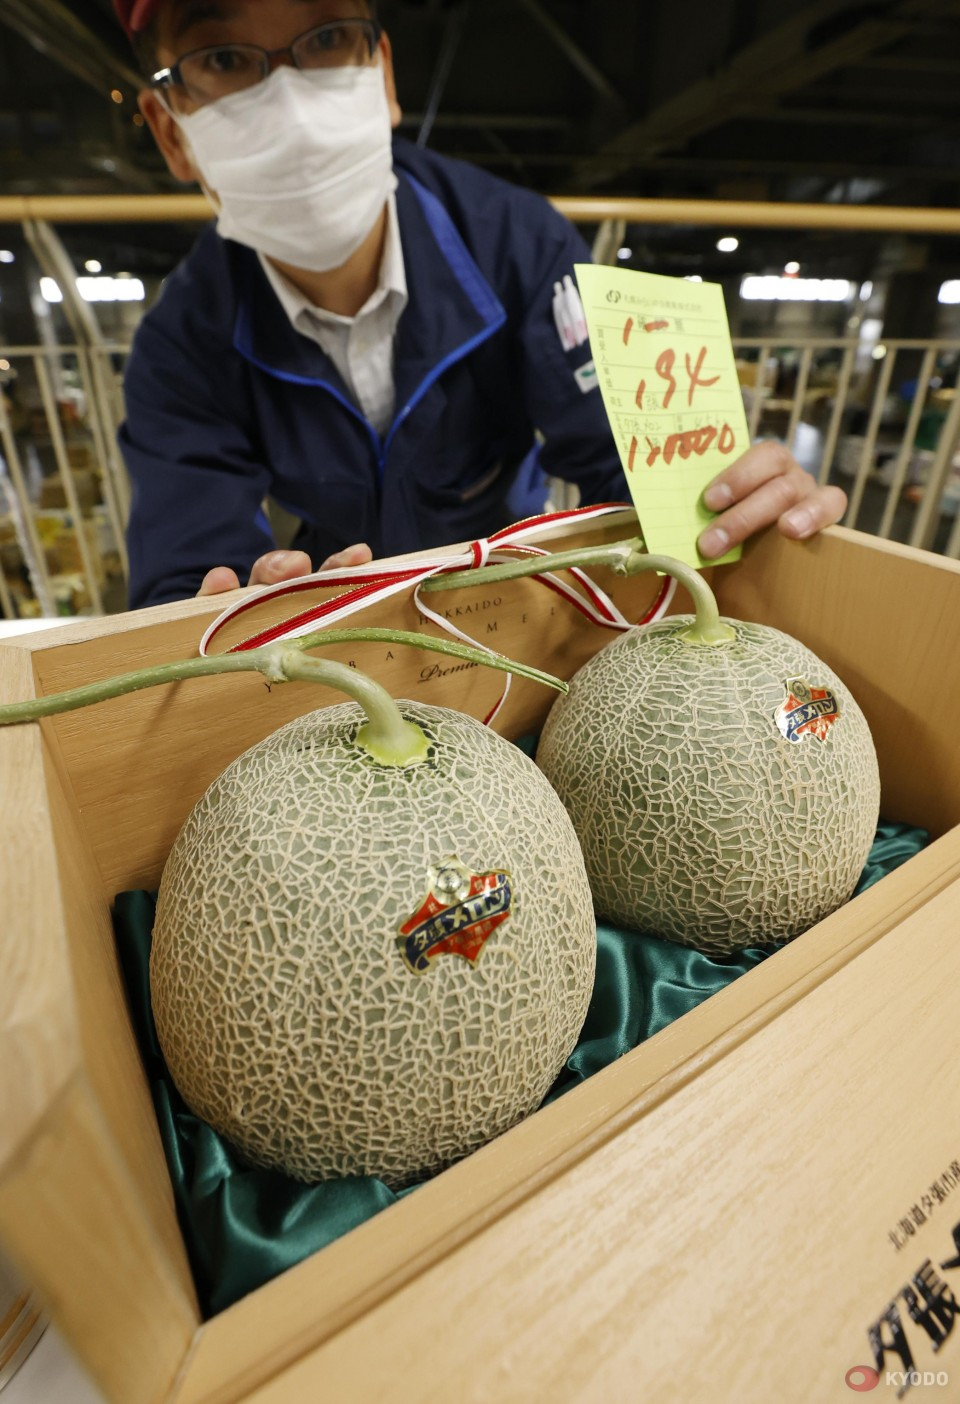 Price Of Hokkaido Melons At Season S 1st Auction Drops Sharply We are cantaloupe, a young, interdisciplinary team consisting of 3d artists, engineers and software developers. price of hokkaido melons at season s